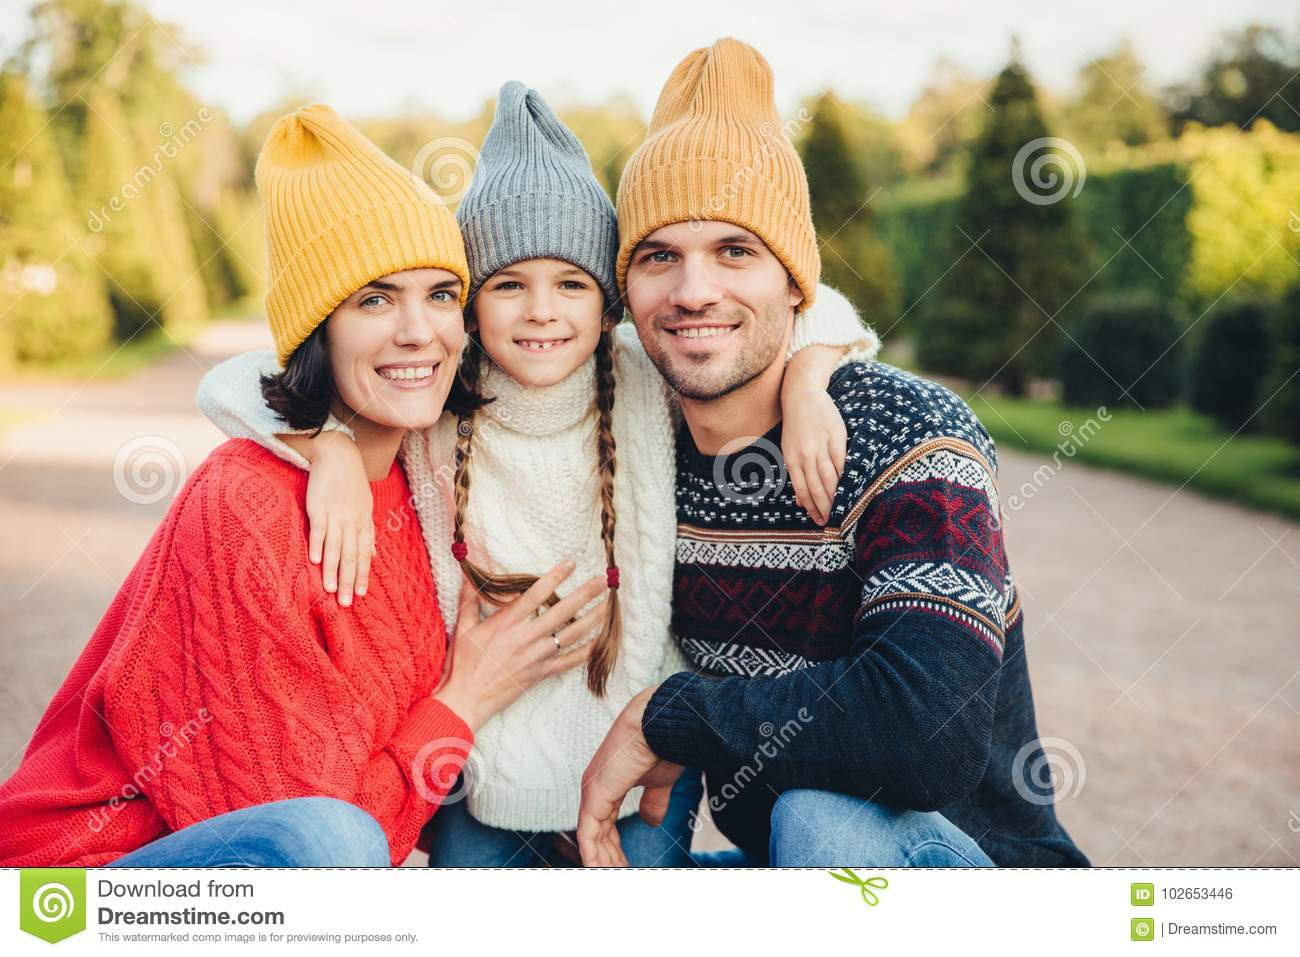 Outdoor portait of beautiful brunette female, handsome man, pretty small girl embrace together, have pleasant mood, walk in park,